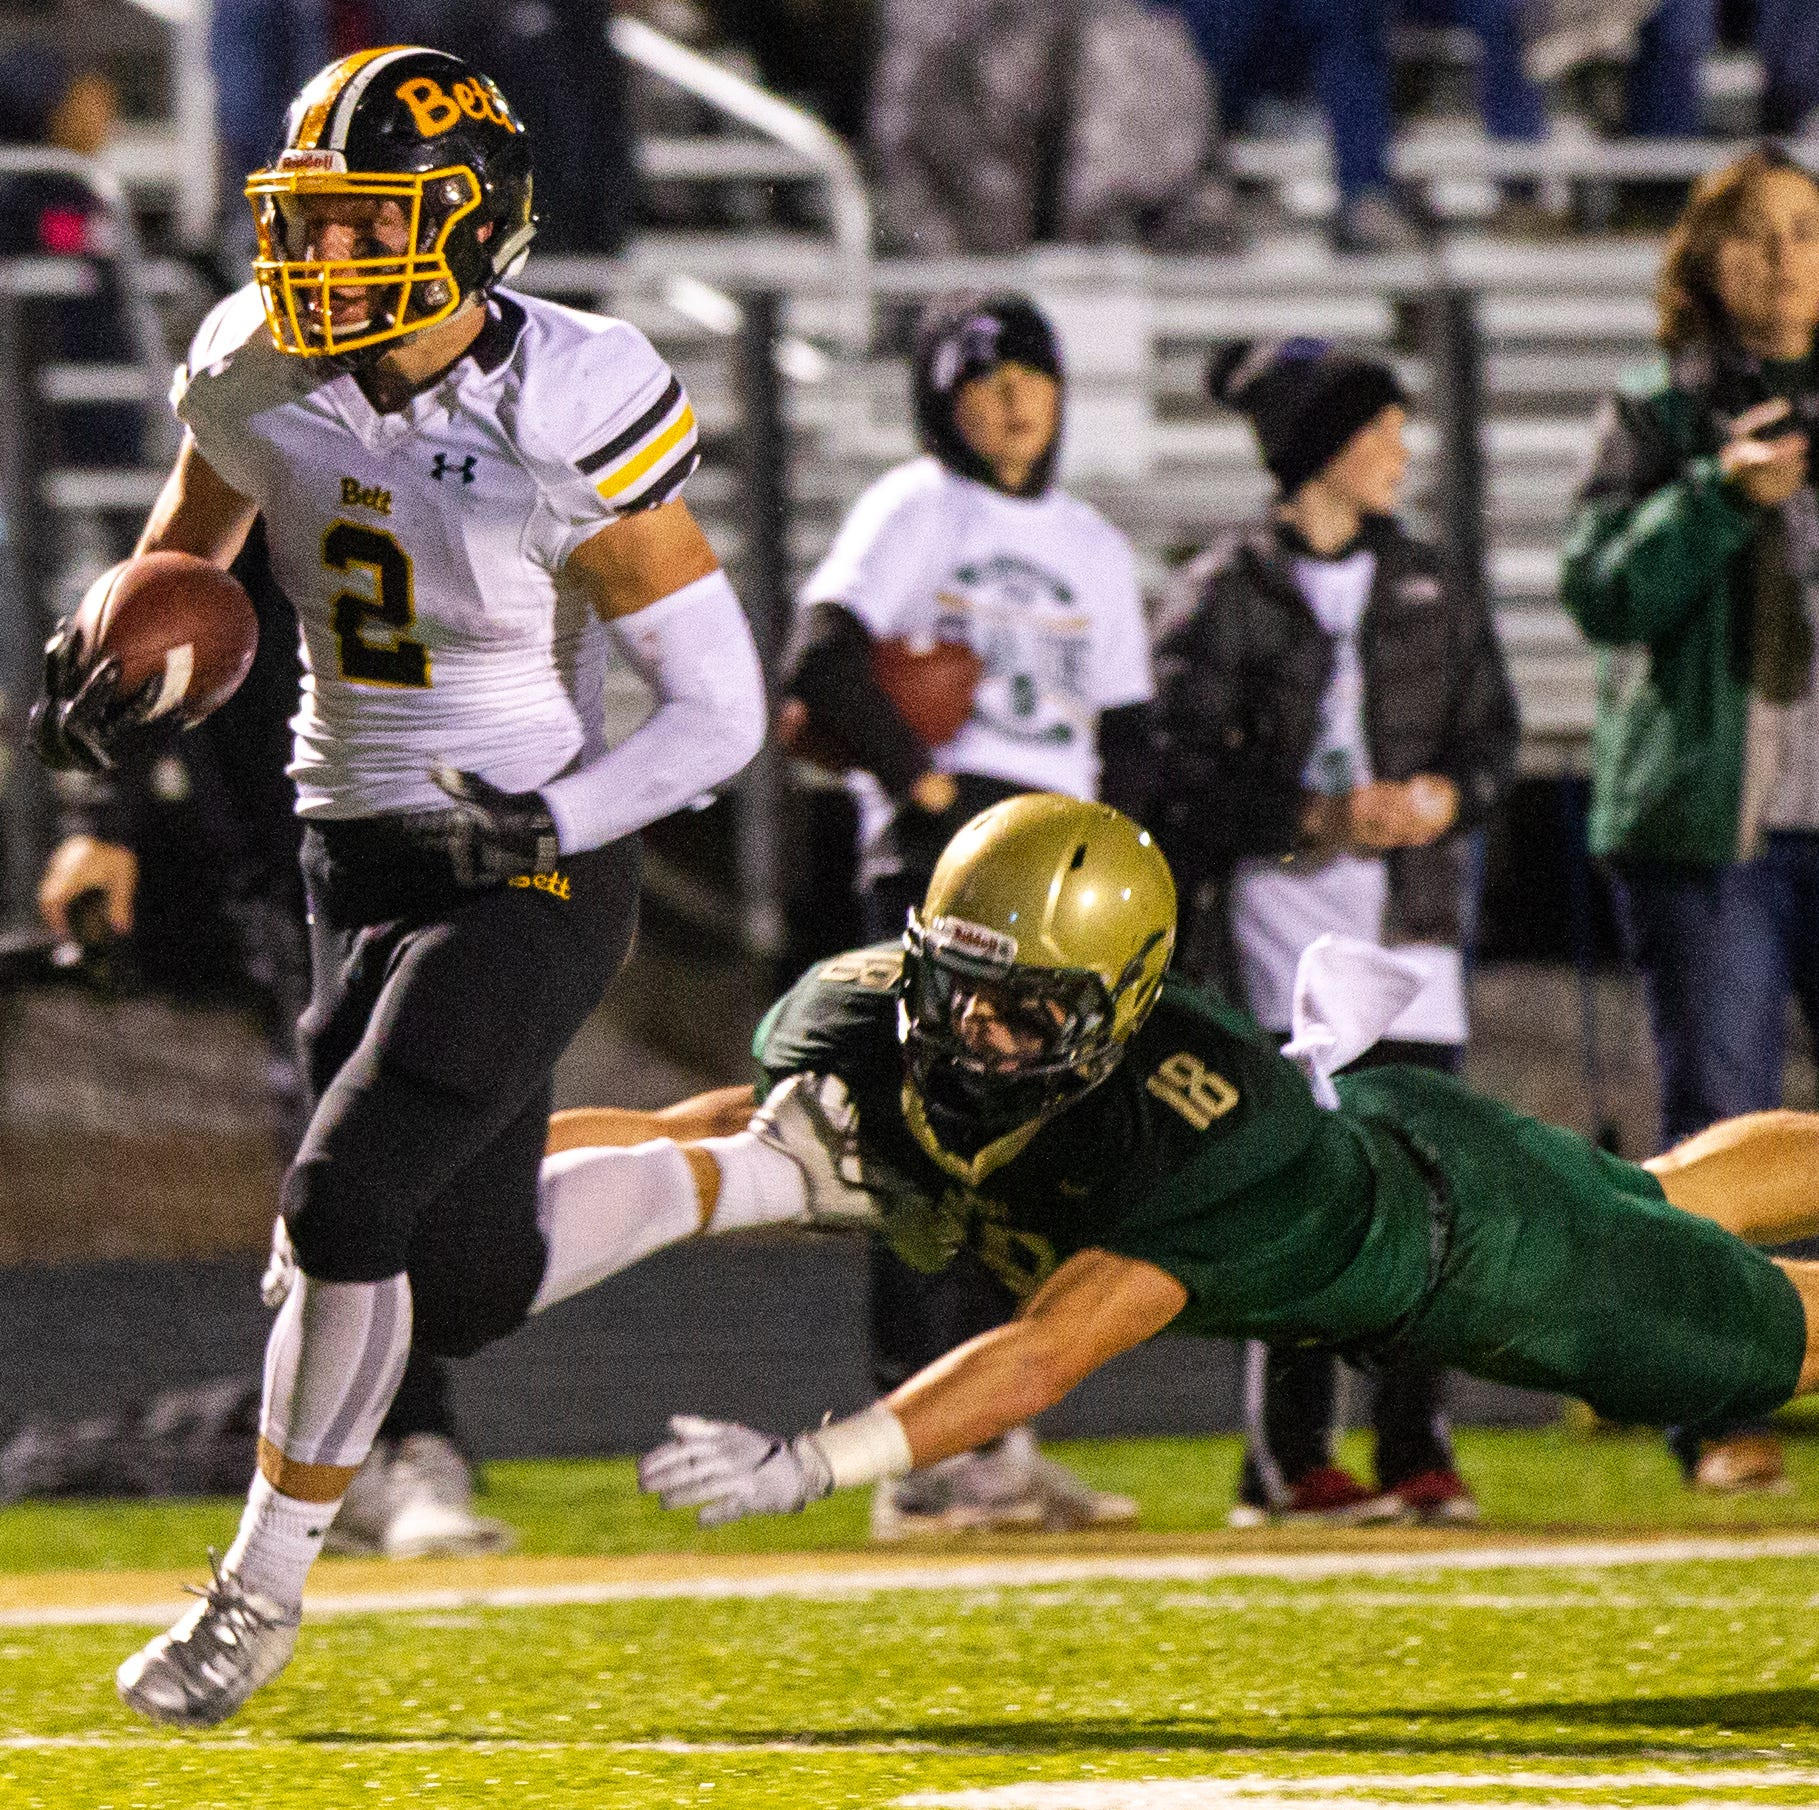 Iowa high school football: What we learned from Bettendorf's quarterfinal win over Iowa City West